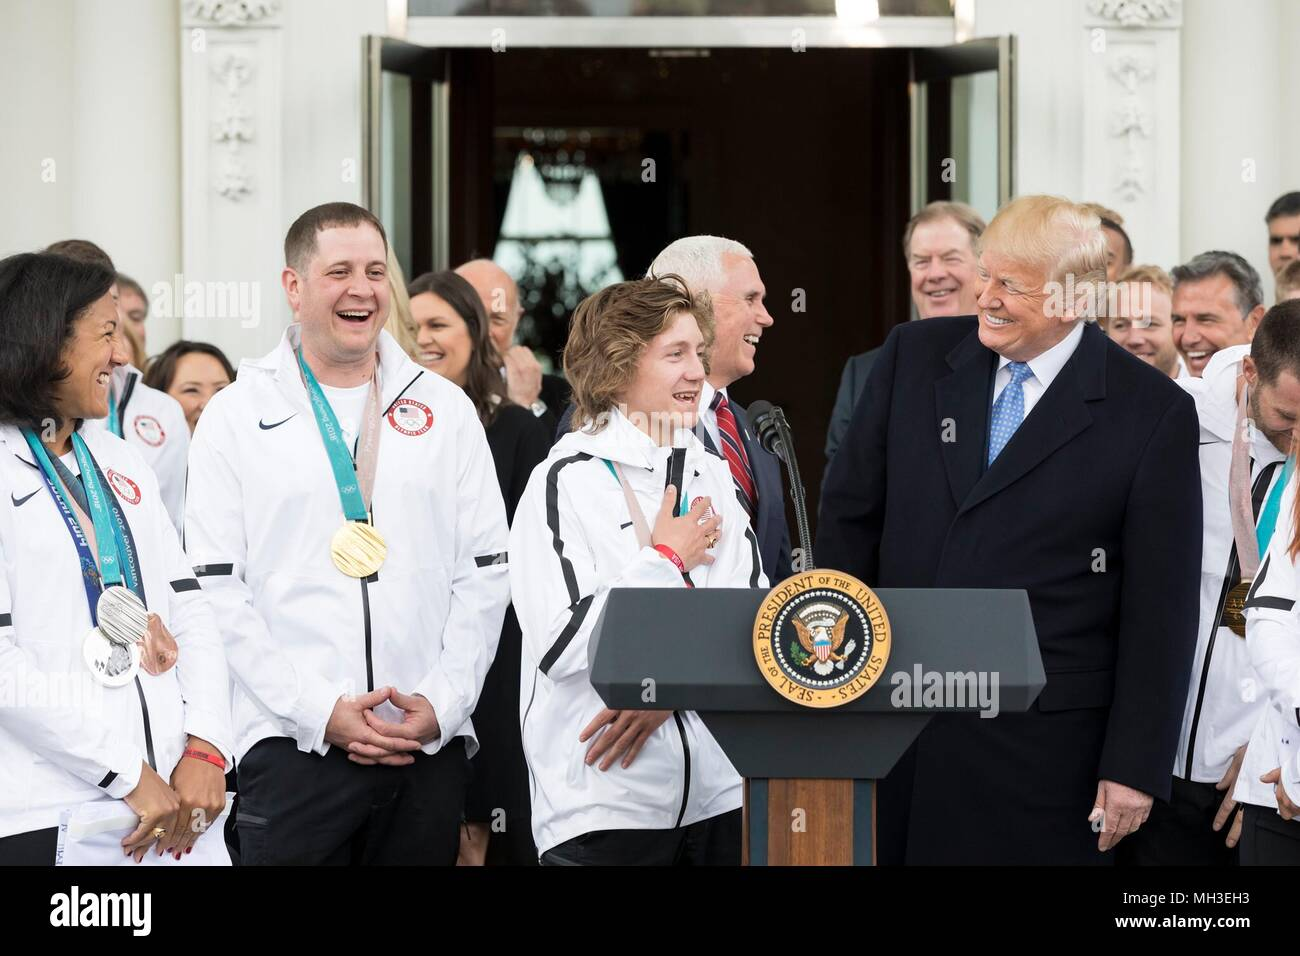 U.S. President Donald Trump shares a laugh with Olympic snowboarding gold medalist Redmond Gerard, center, during an event honoring Team USA Olympic and Paralympic athletes at the White House April 27, 2018 in Washington, DC. - Stock Image